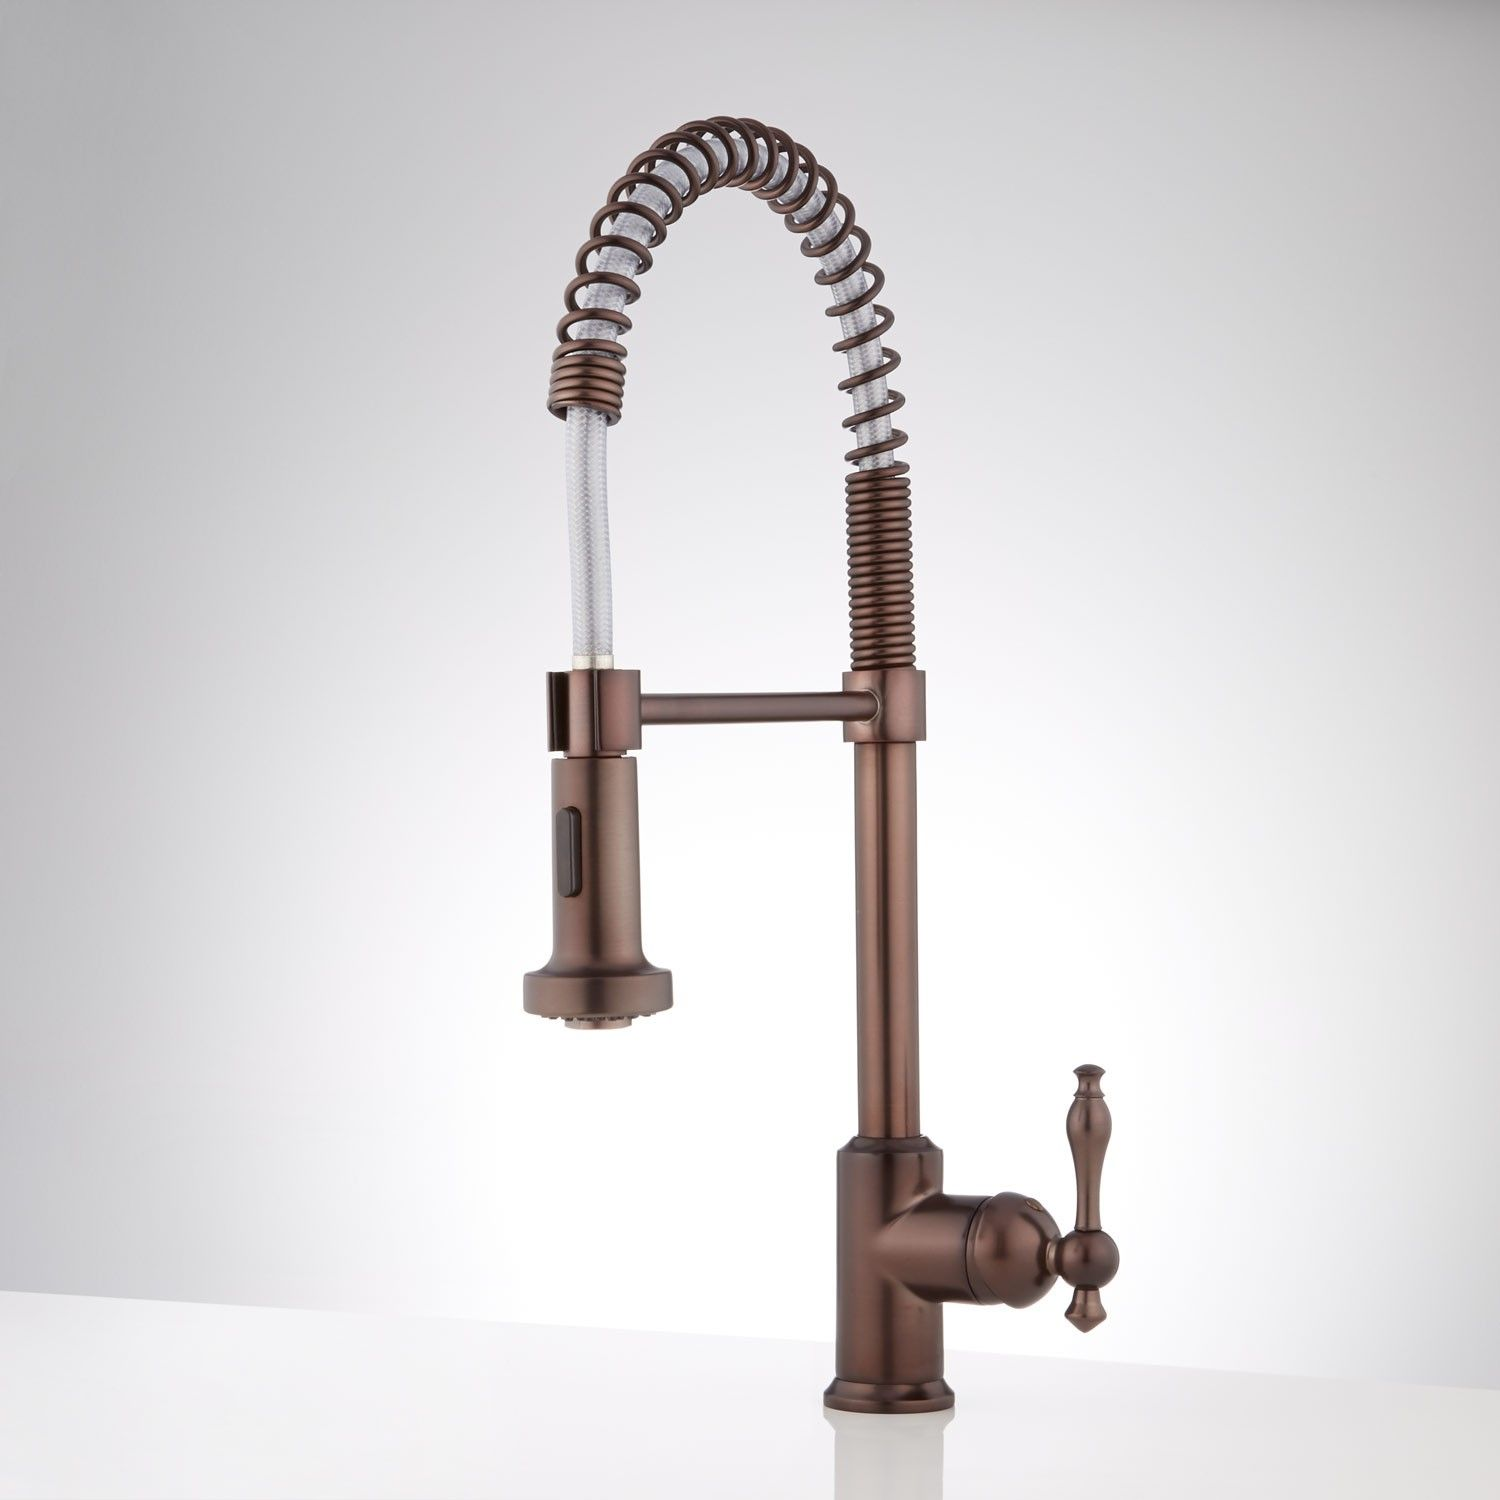 Grayson Single Hole Kitchen Faucet With Pull Down Spring Spout